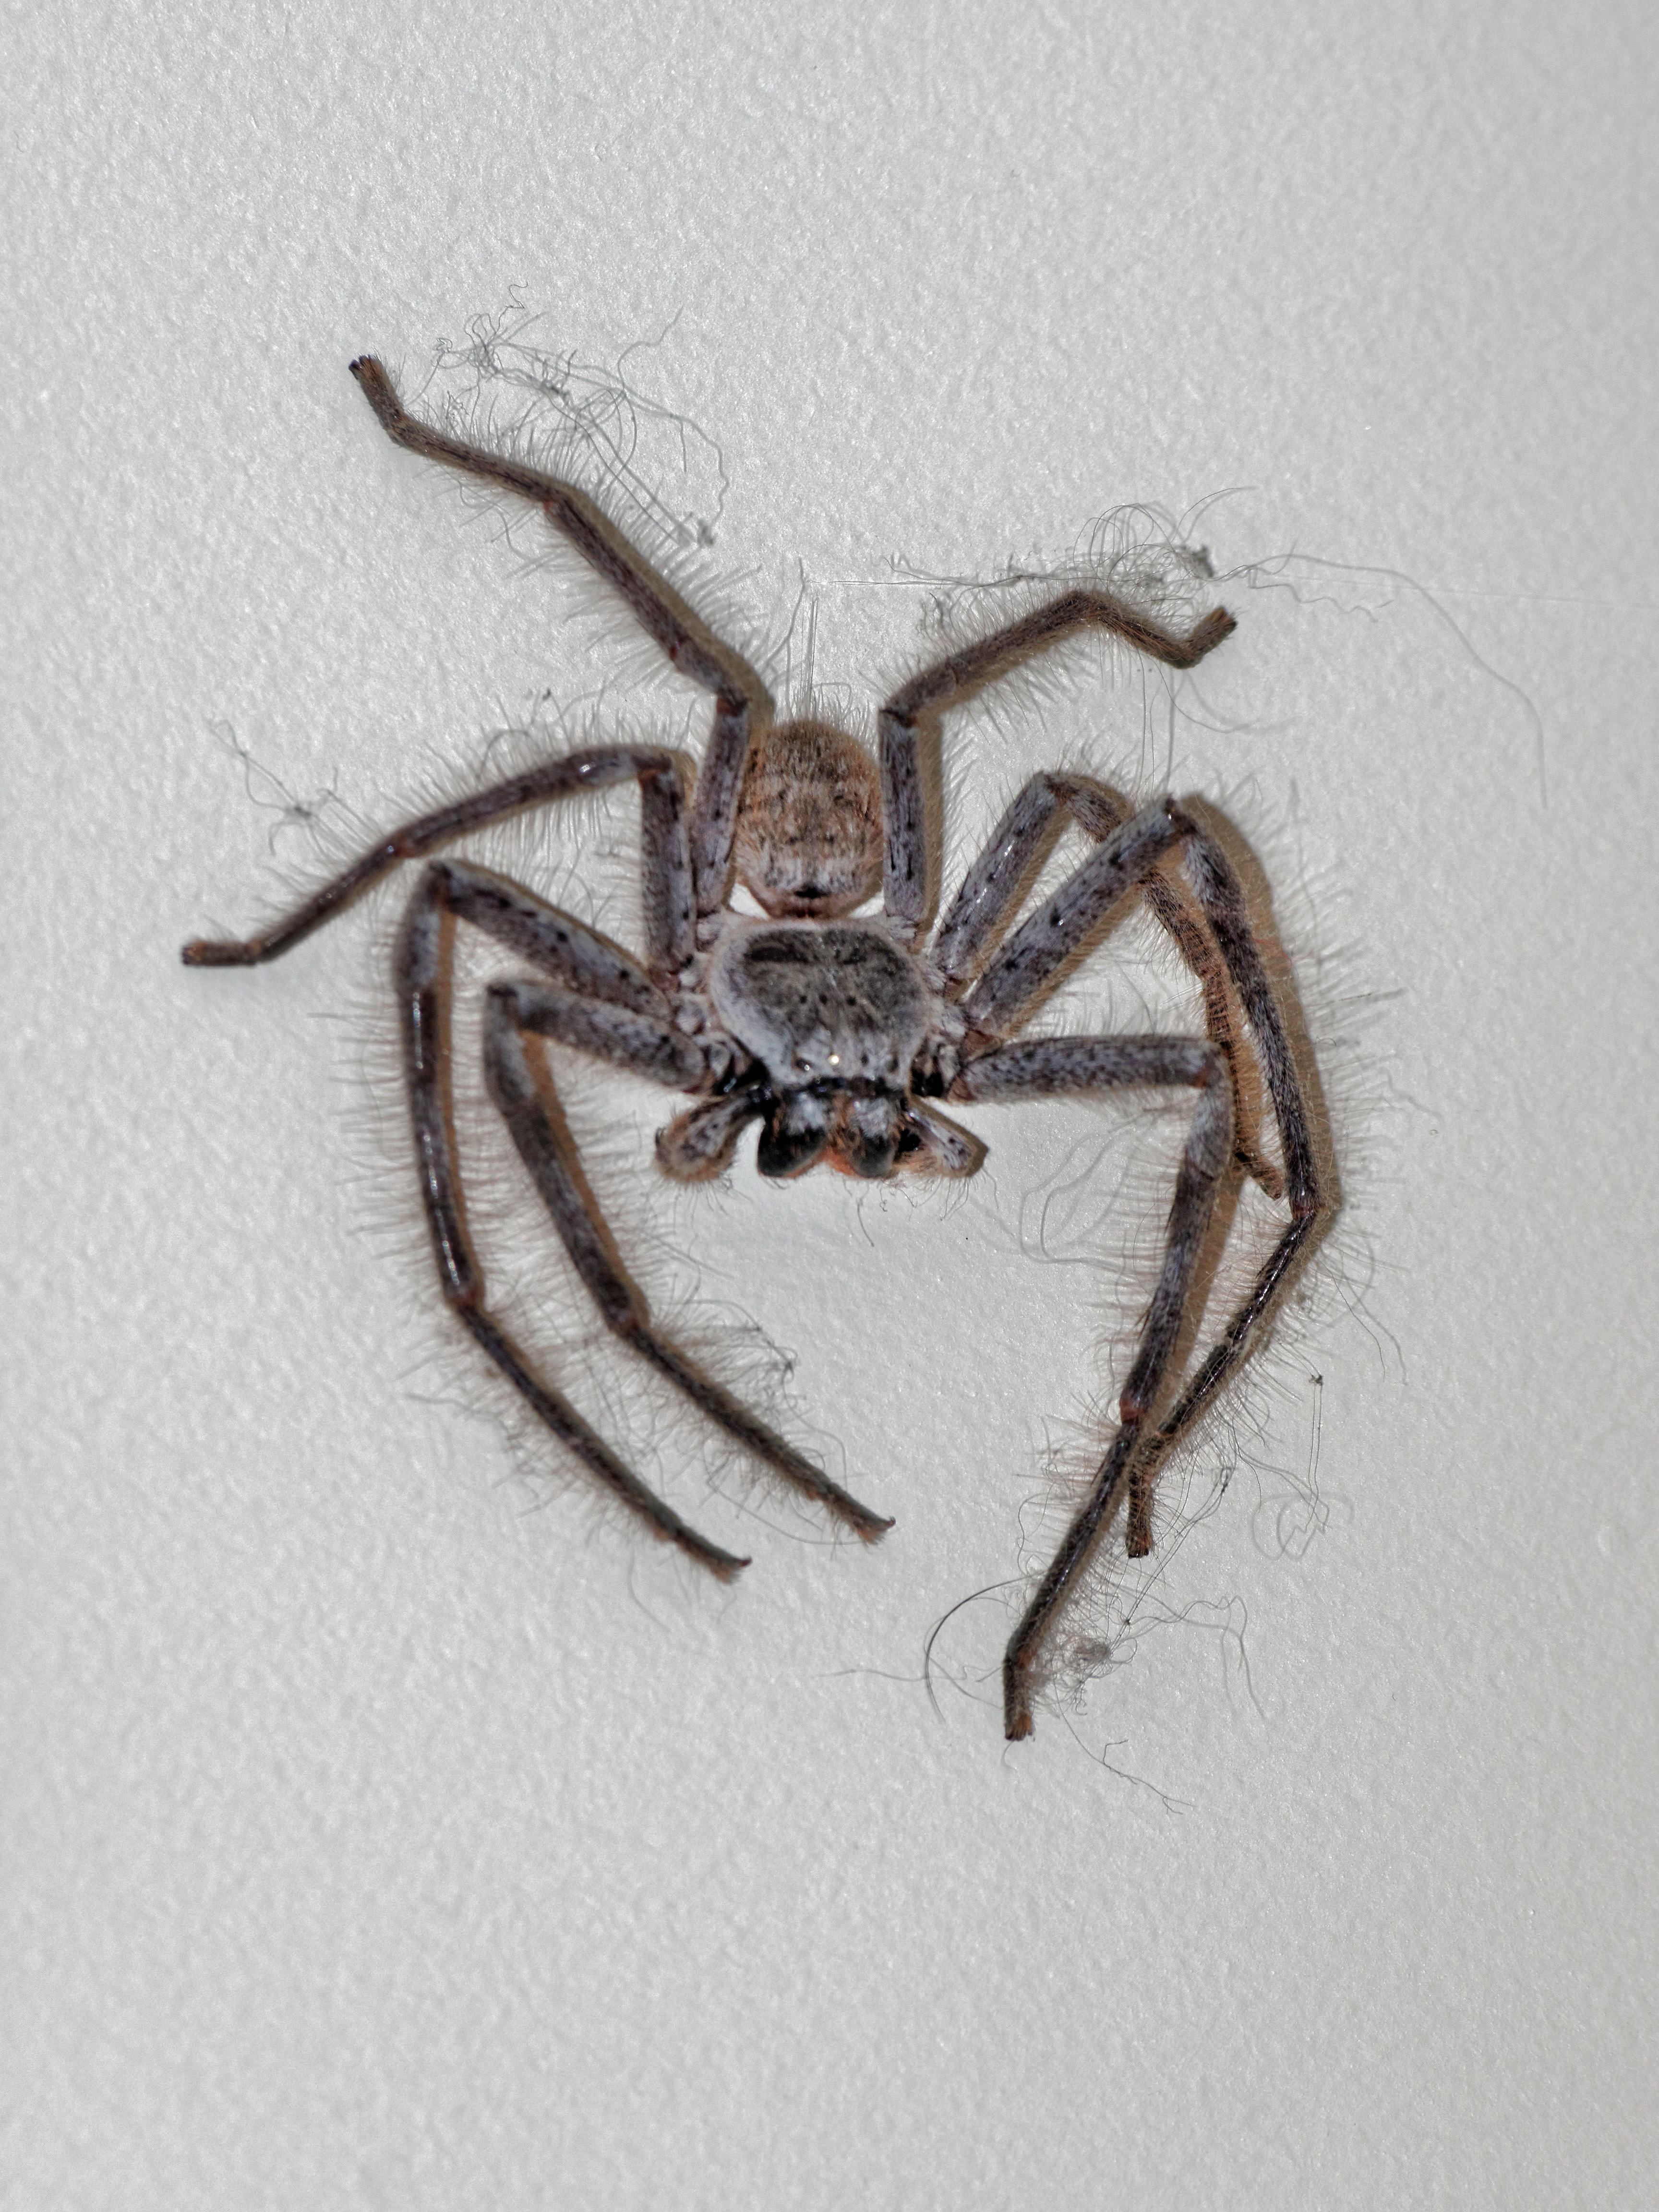 This should be Huntsman-spider-1.jpeg.  Is it missing?